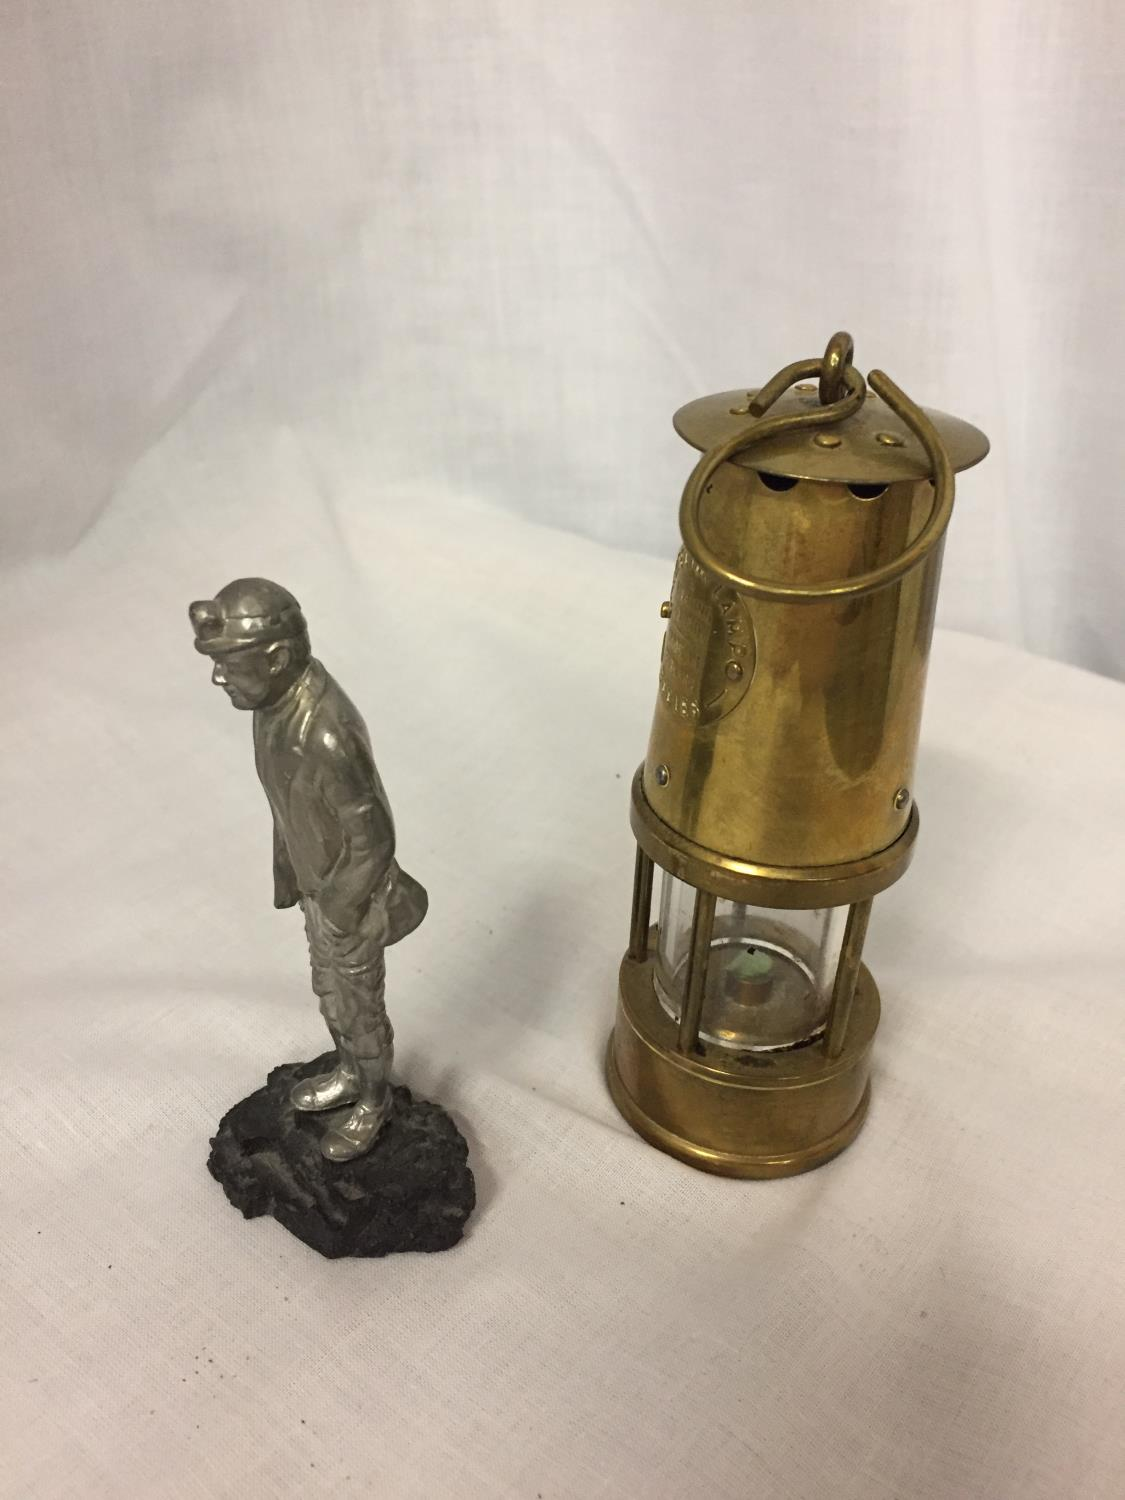 A BRASS MINATURE MINERS PROTECTION LAMP ECCLES AND A FIGURE OF A MINER - Image 2 of 3